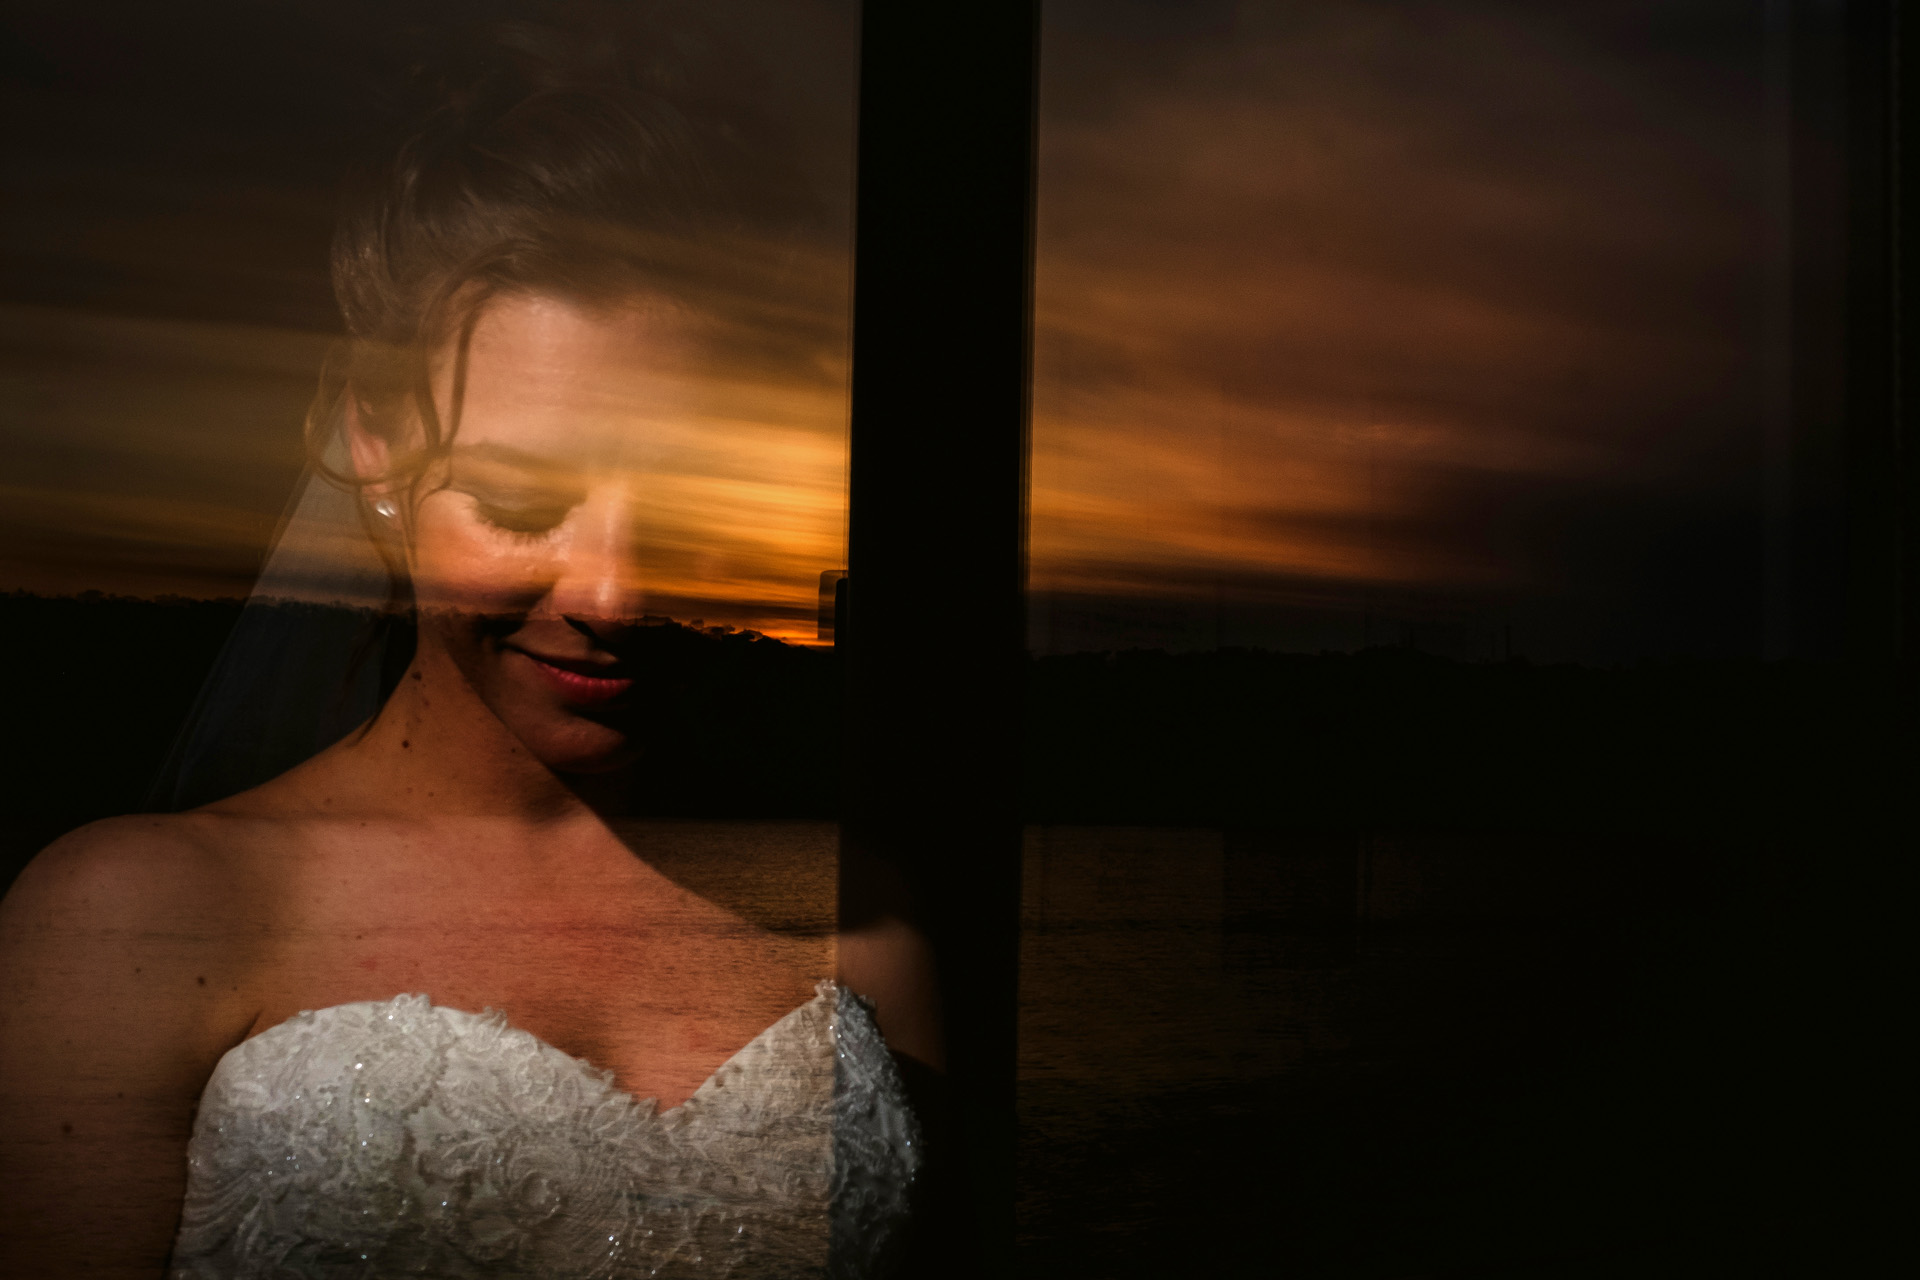 Istanbul, Turkey Wedding Photos | a portrait of the bride reflecting from the hotel window at sunset